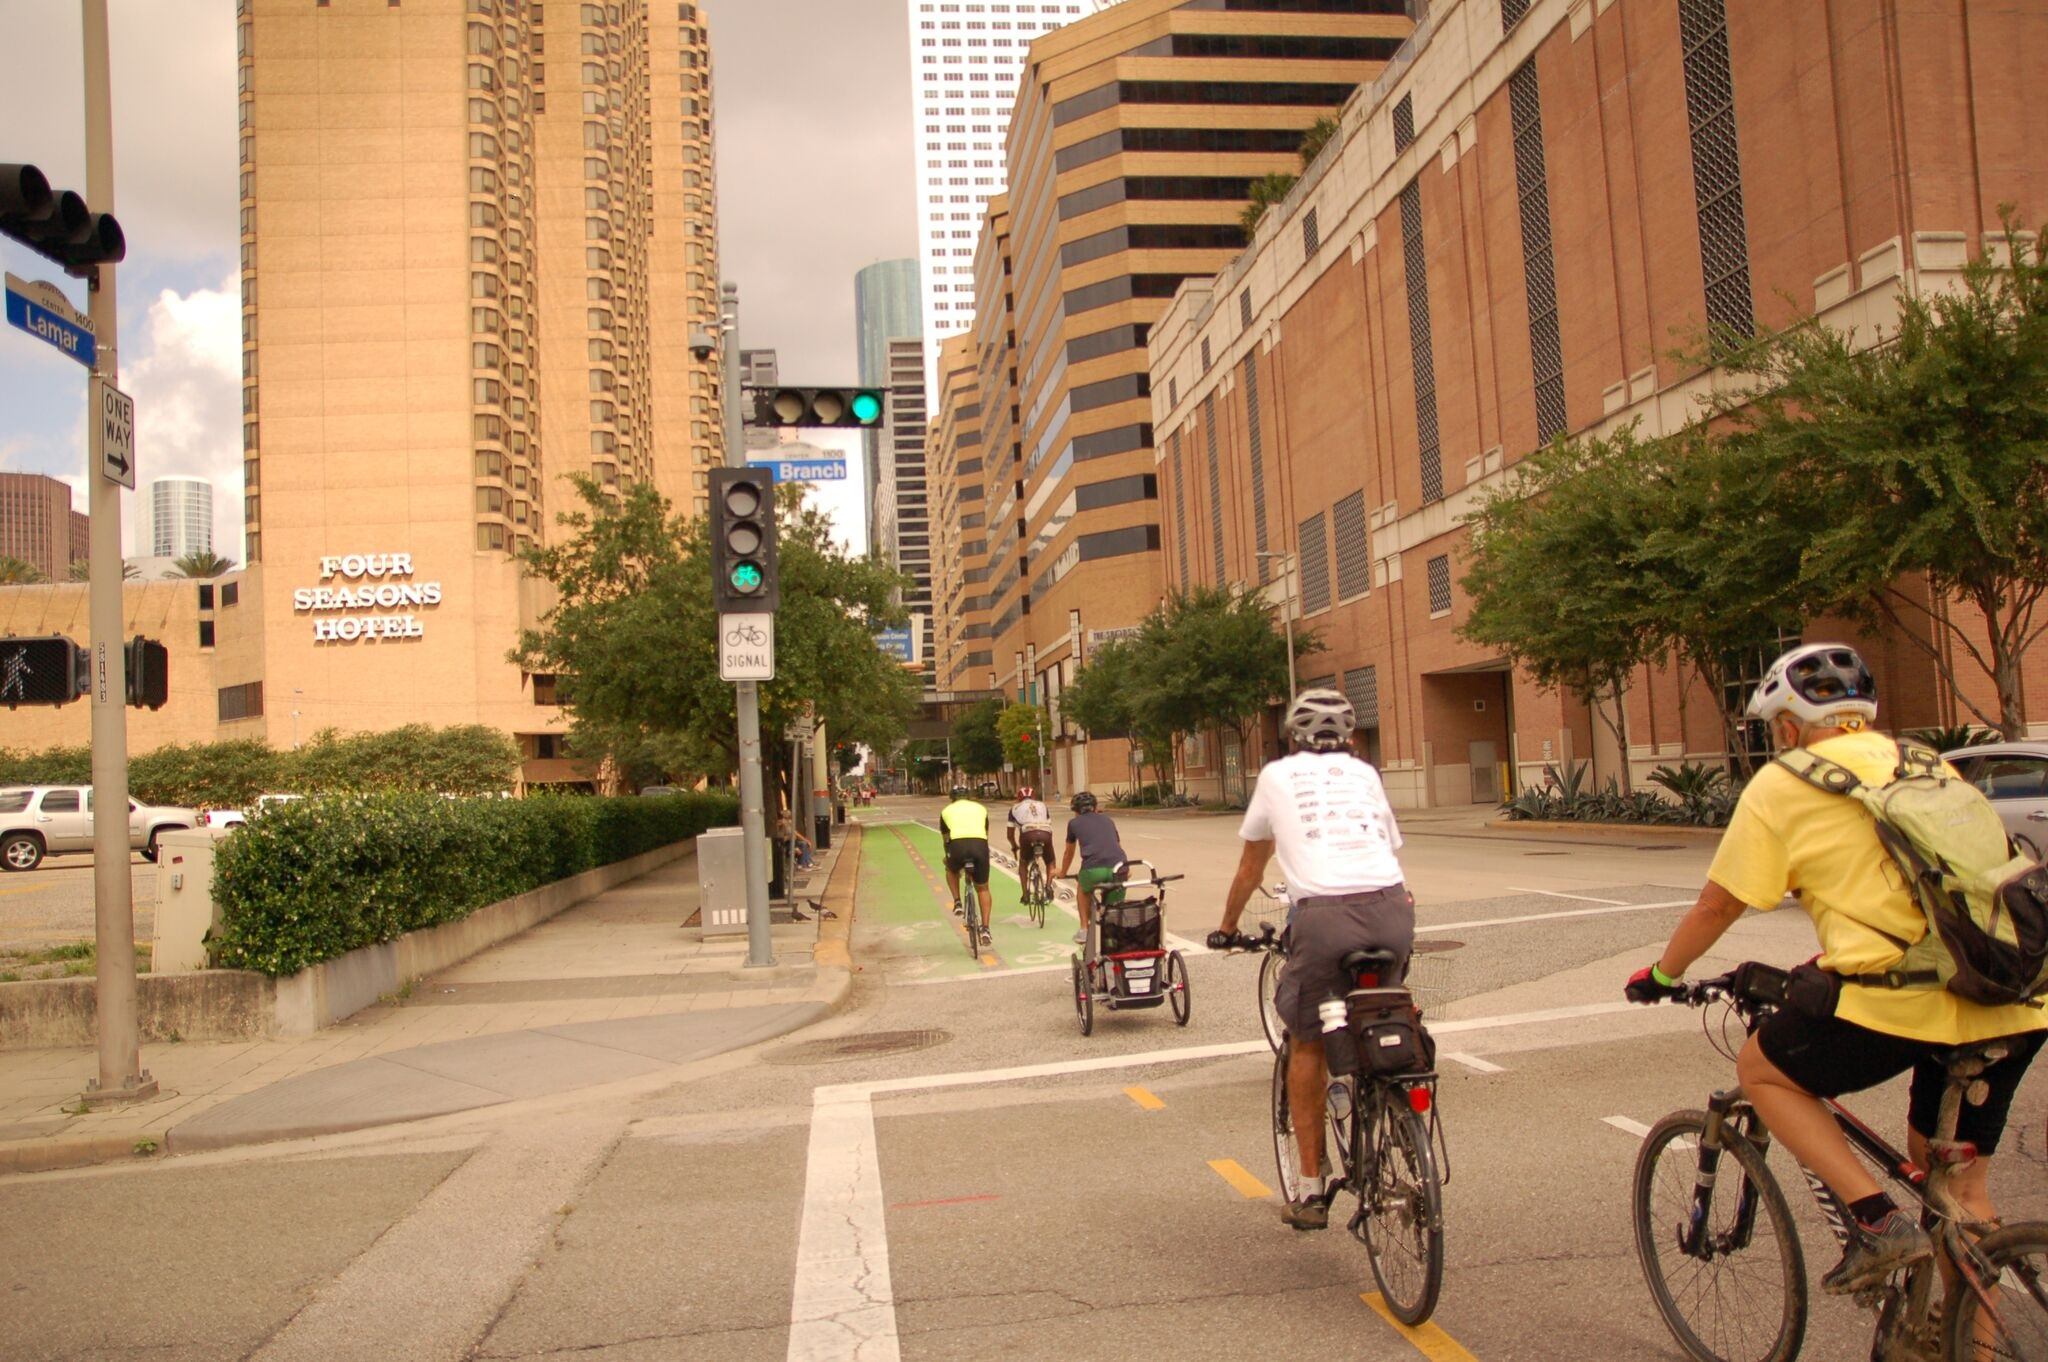 One of the main goals of the Houston bike plan is to expand the high-comfort network to more than 800 miles.